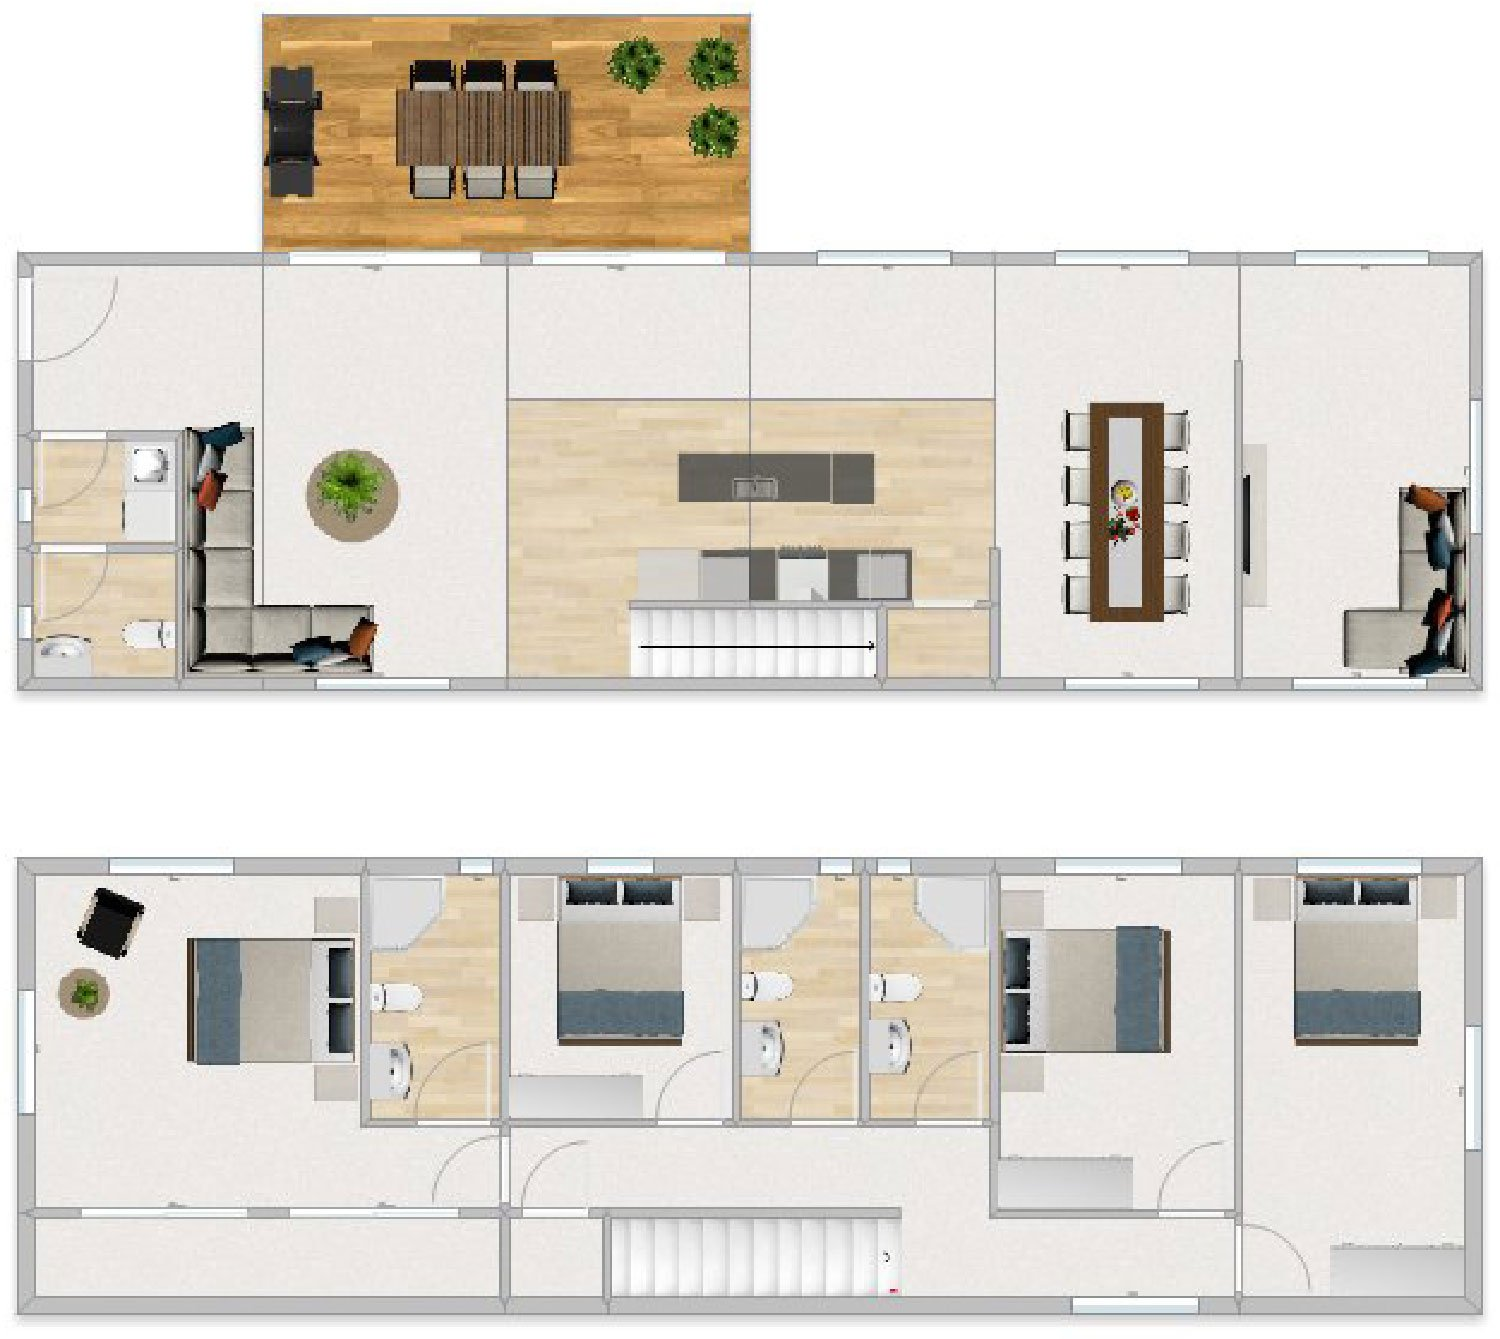 FirstBuild Epic 180 4 bedrooms 4 bathrooms 2 Entertaining Areas 2 levels